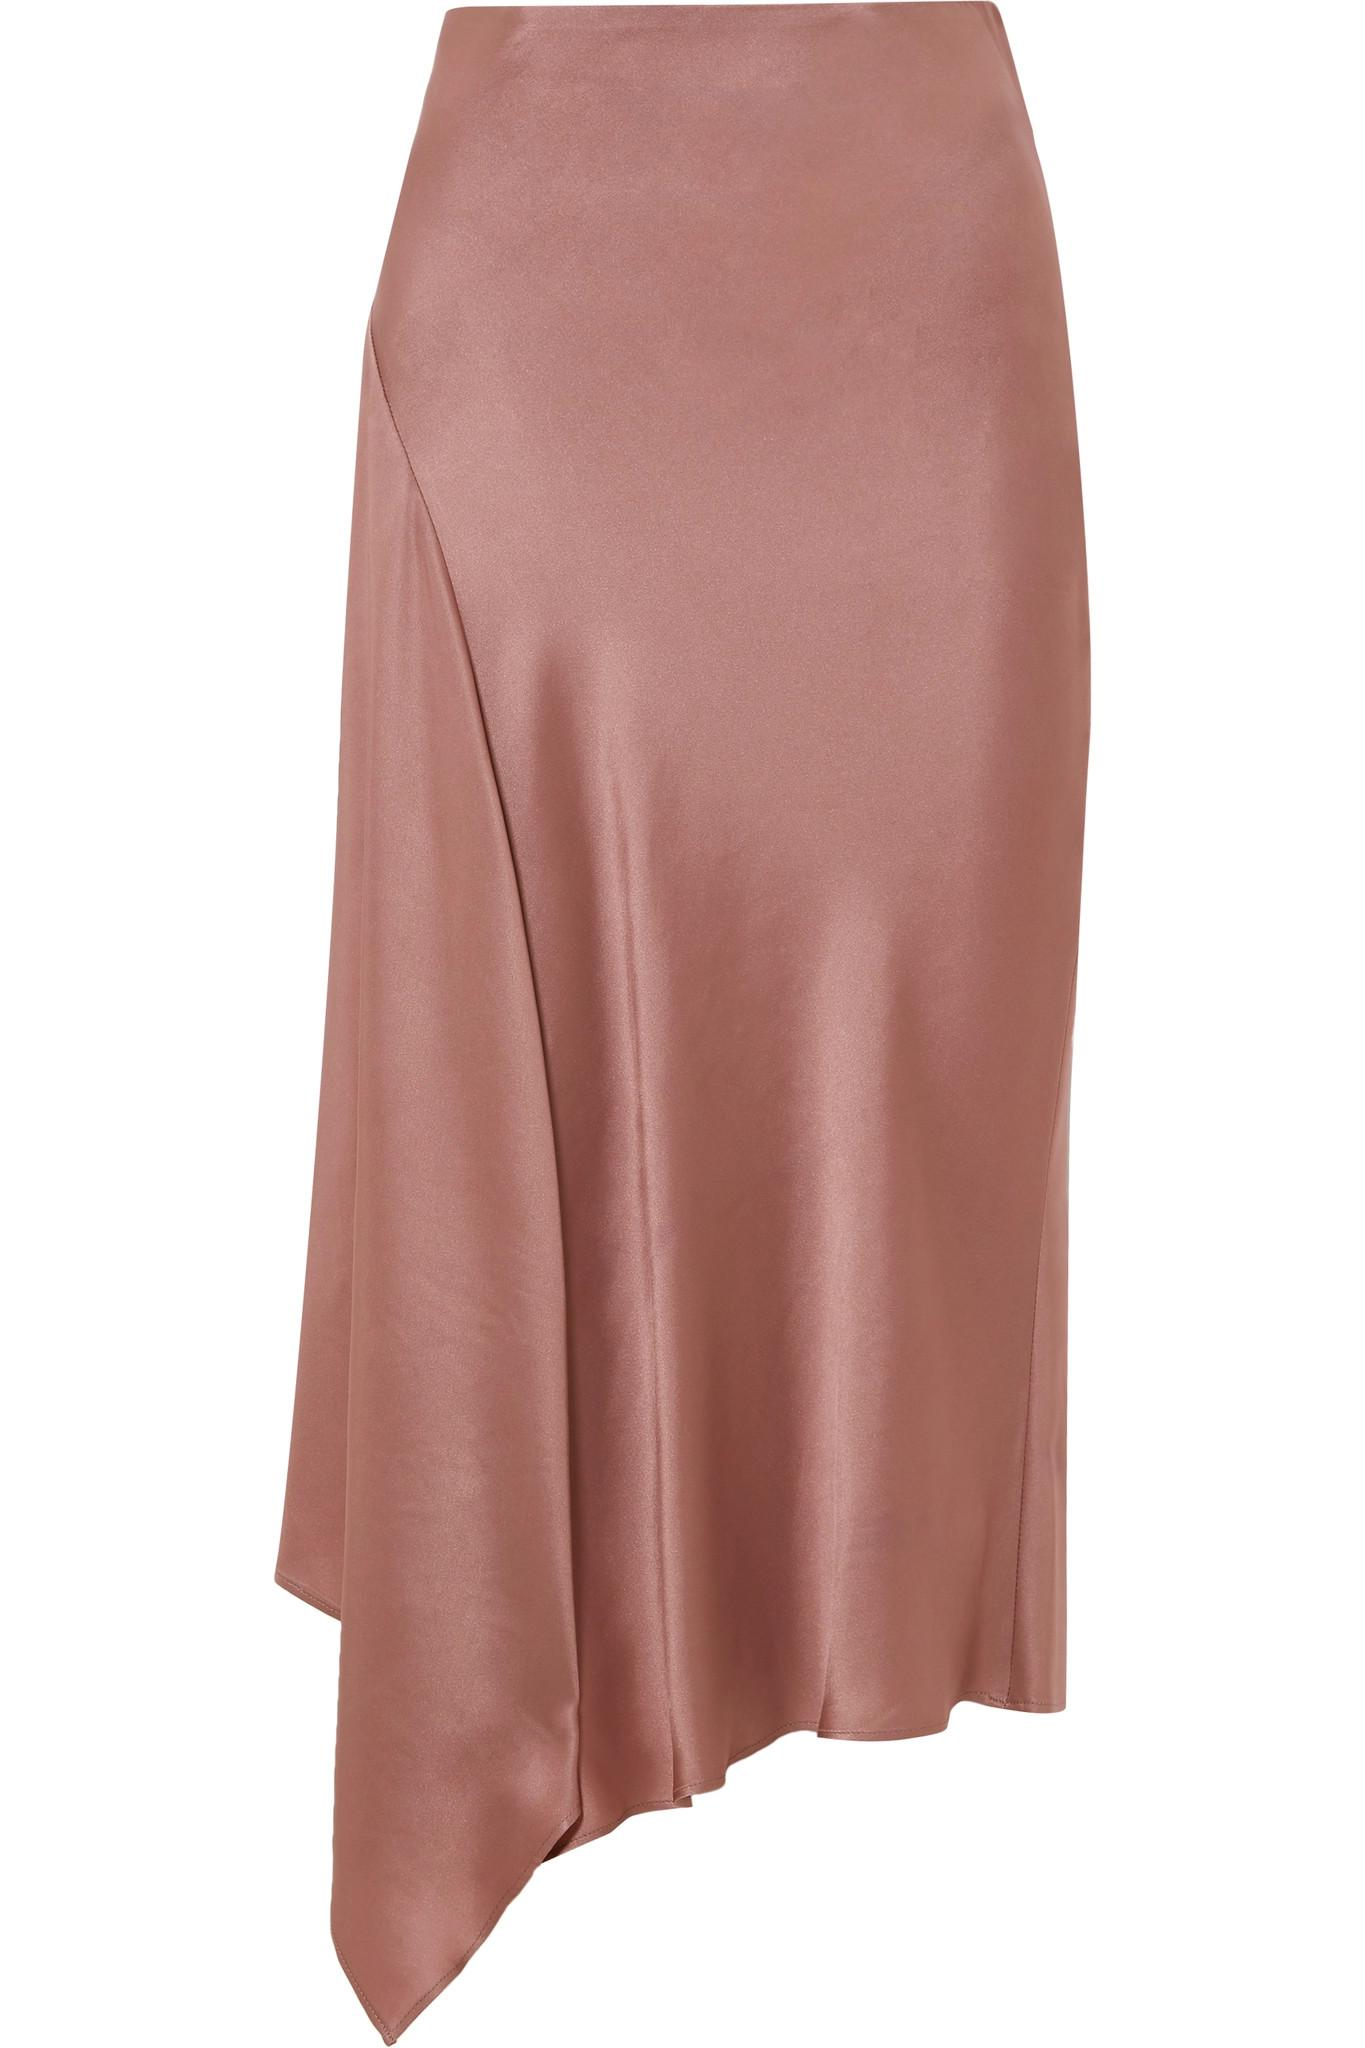 f466042547 Brunello Cucinelli Asymmetric Satin Midi Skirt in Pink - Lyst